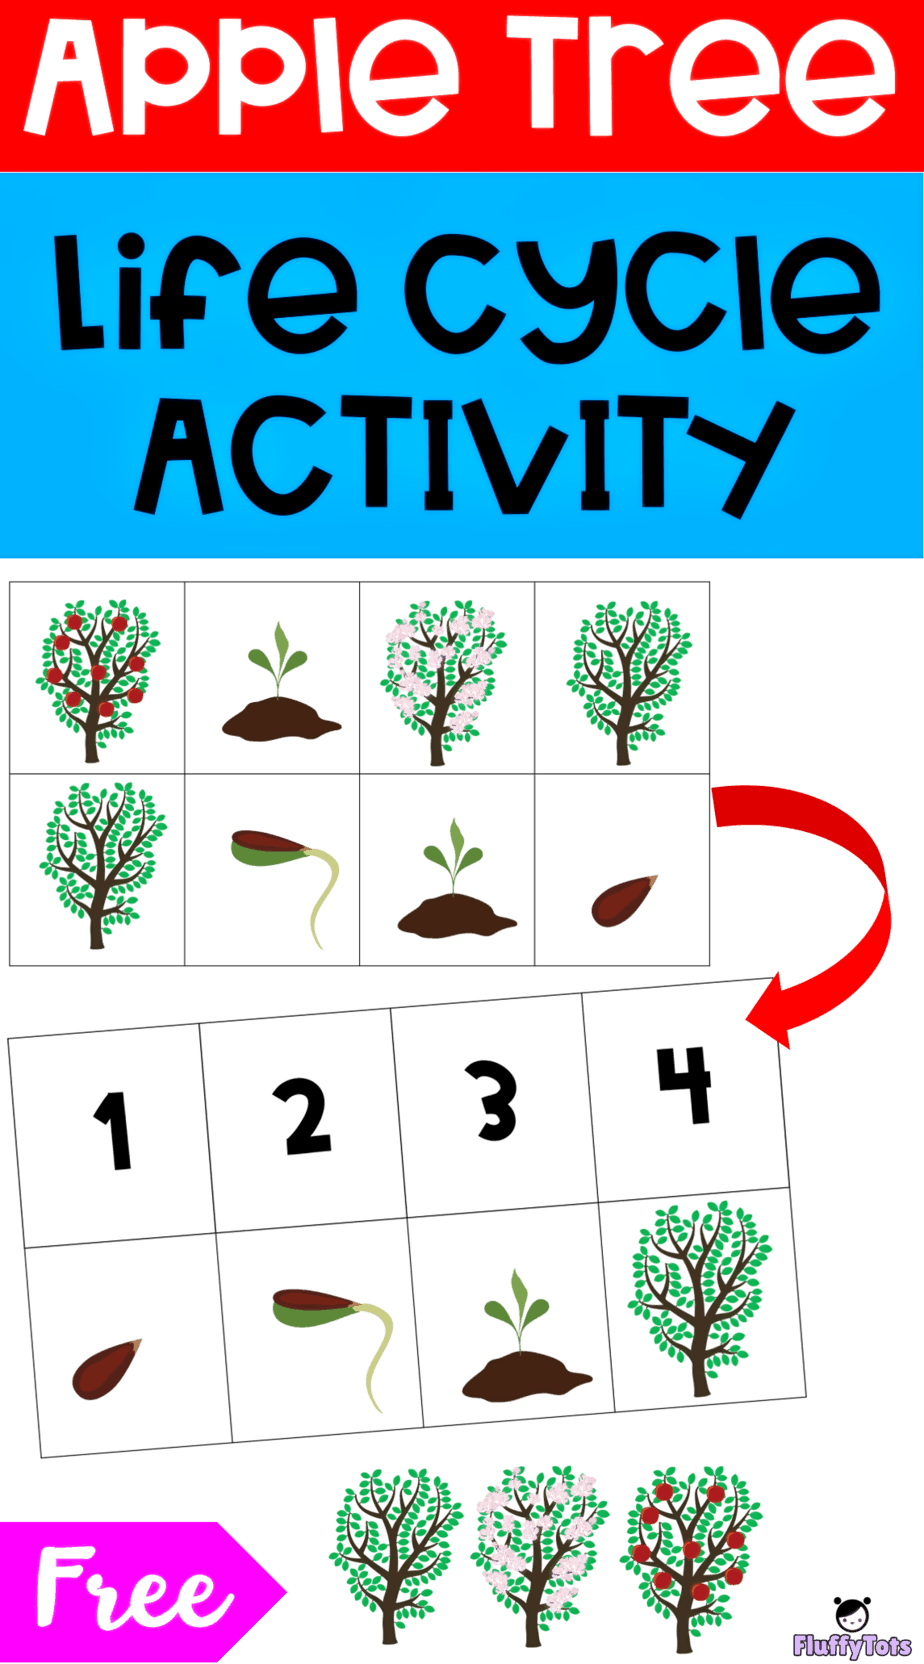 Apple Tree Life Cycle Activity Free 2 Sequencing Printable Fluffytots